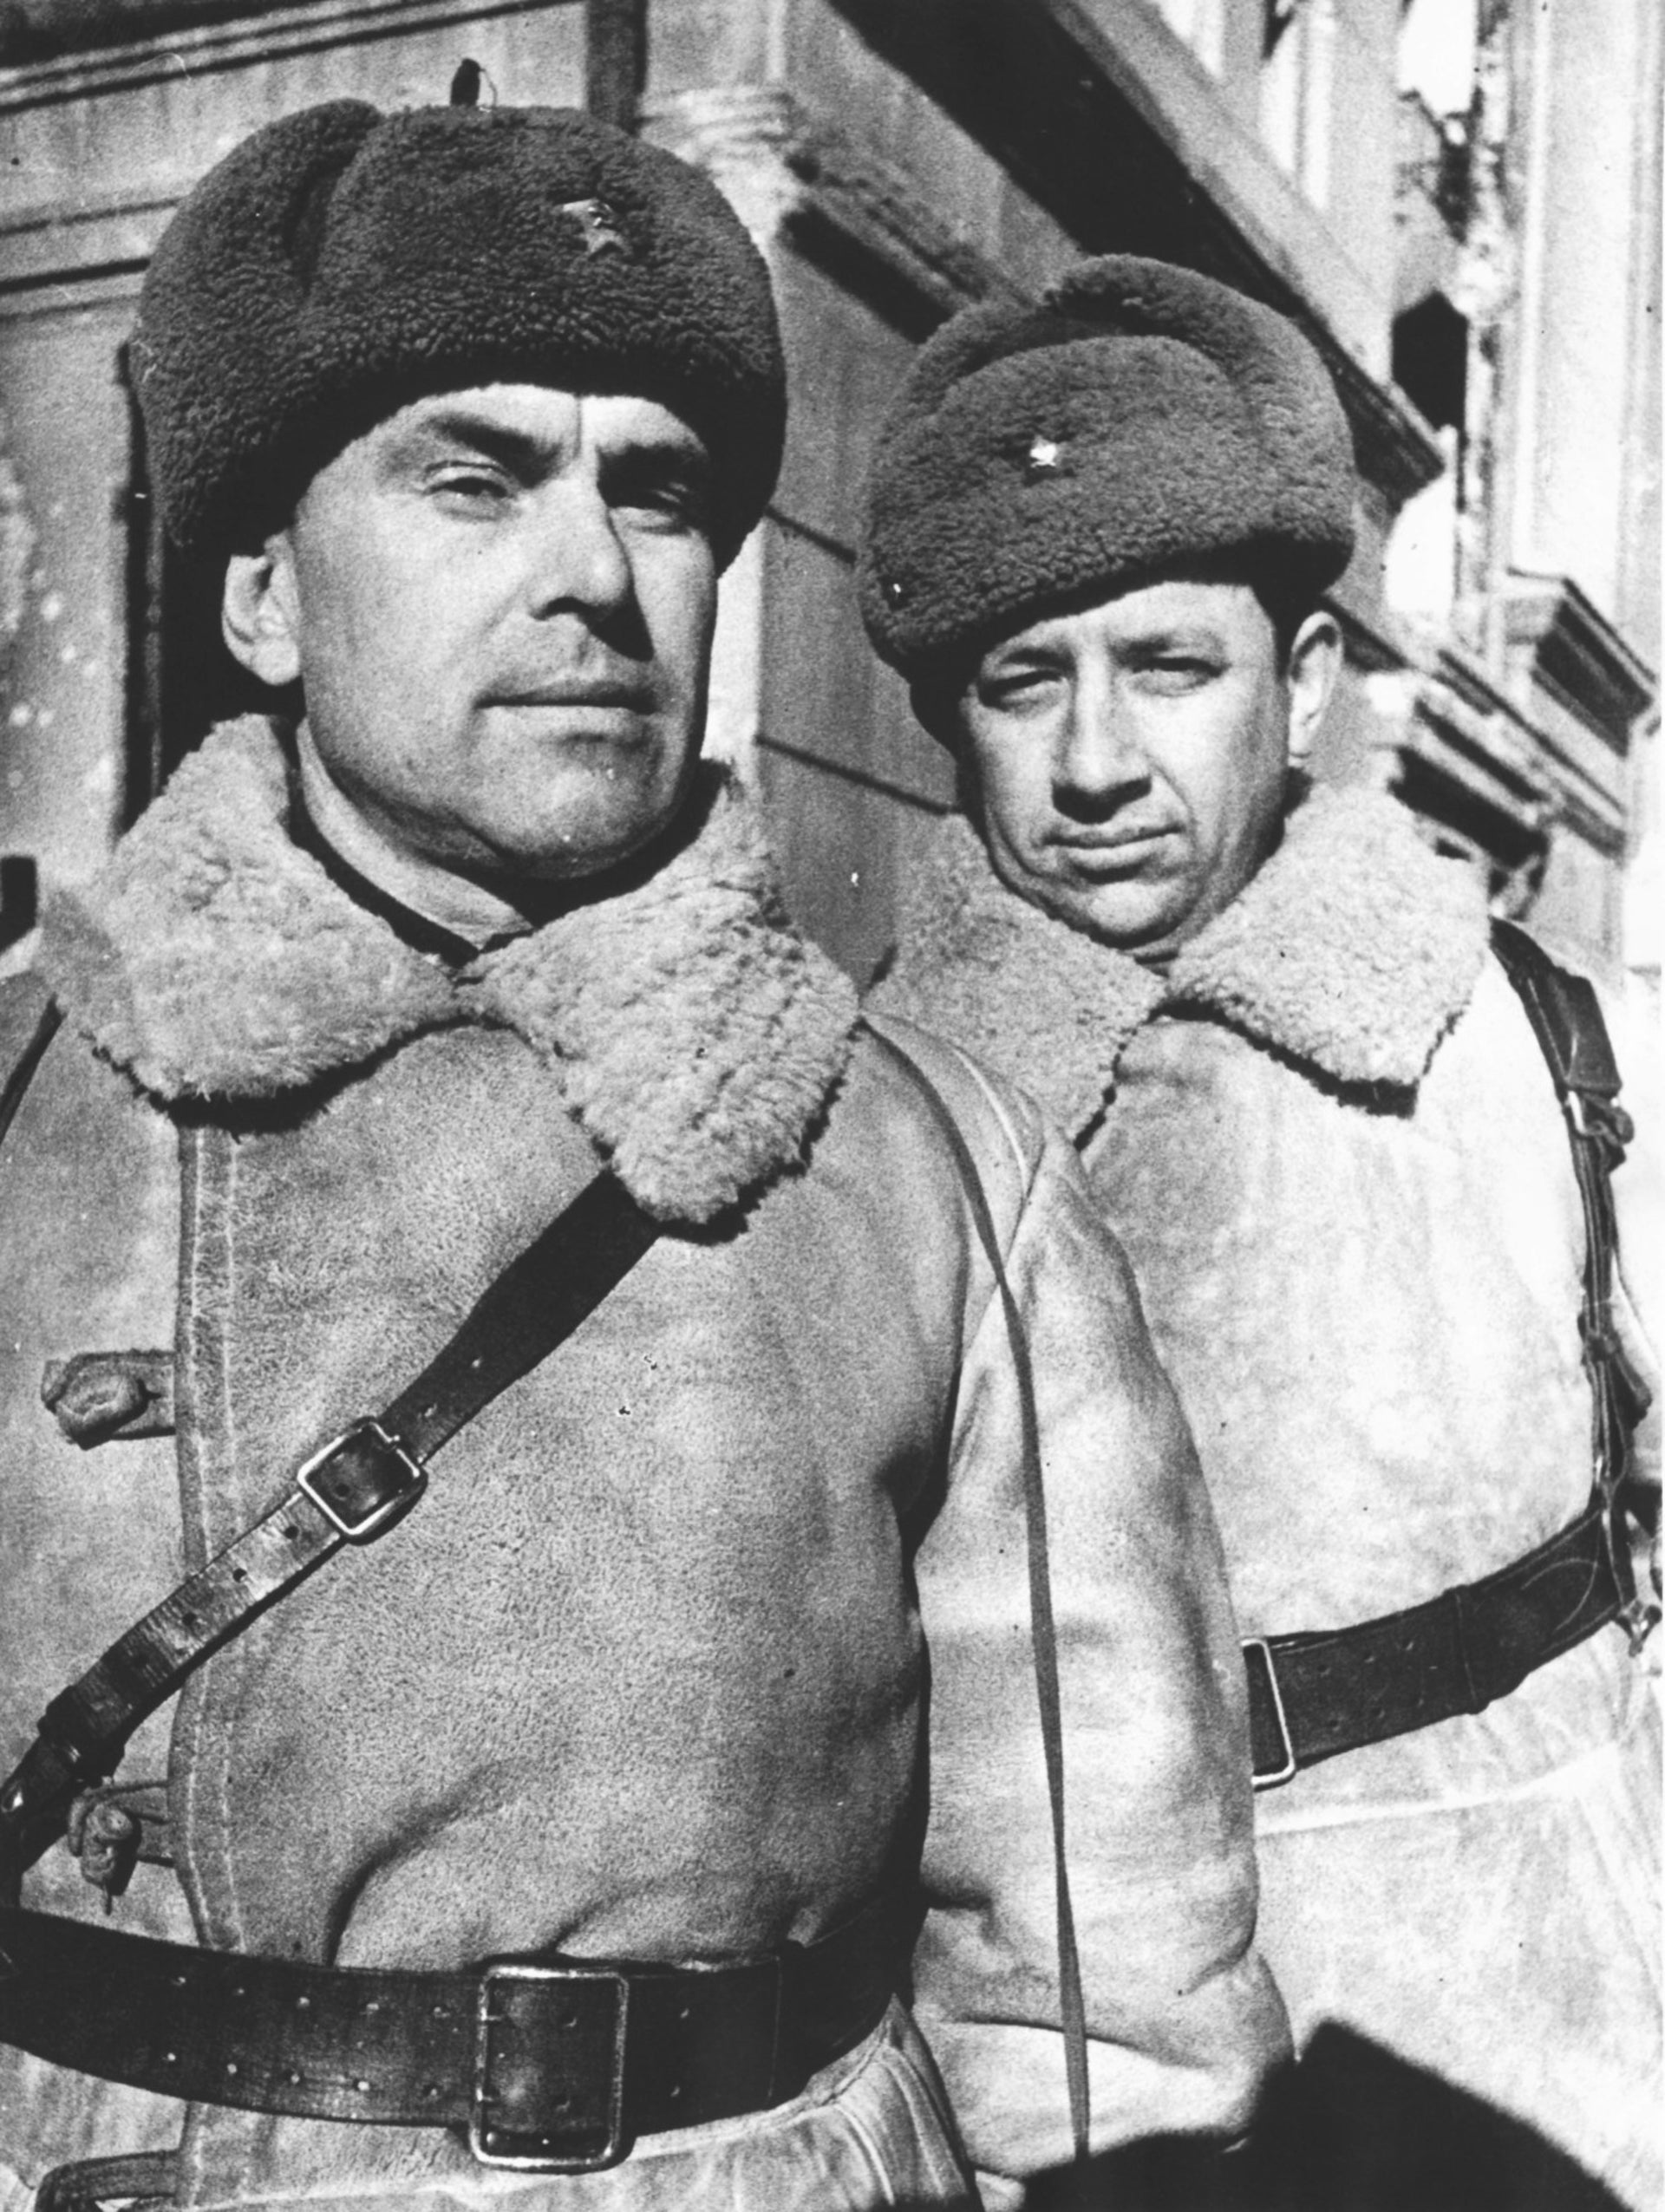 Maj. Gen. Ivan Burmakov and Lt. Col. Leonid Vinokur, two of the Russian officers interviewed after the Battle of Stalingrad.